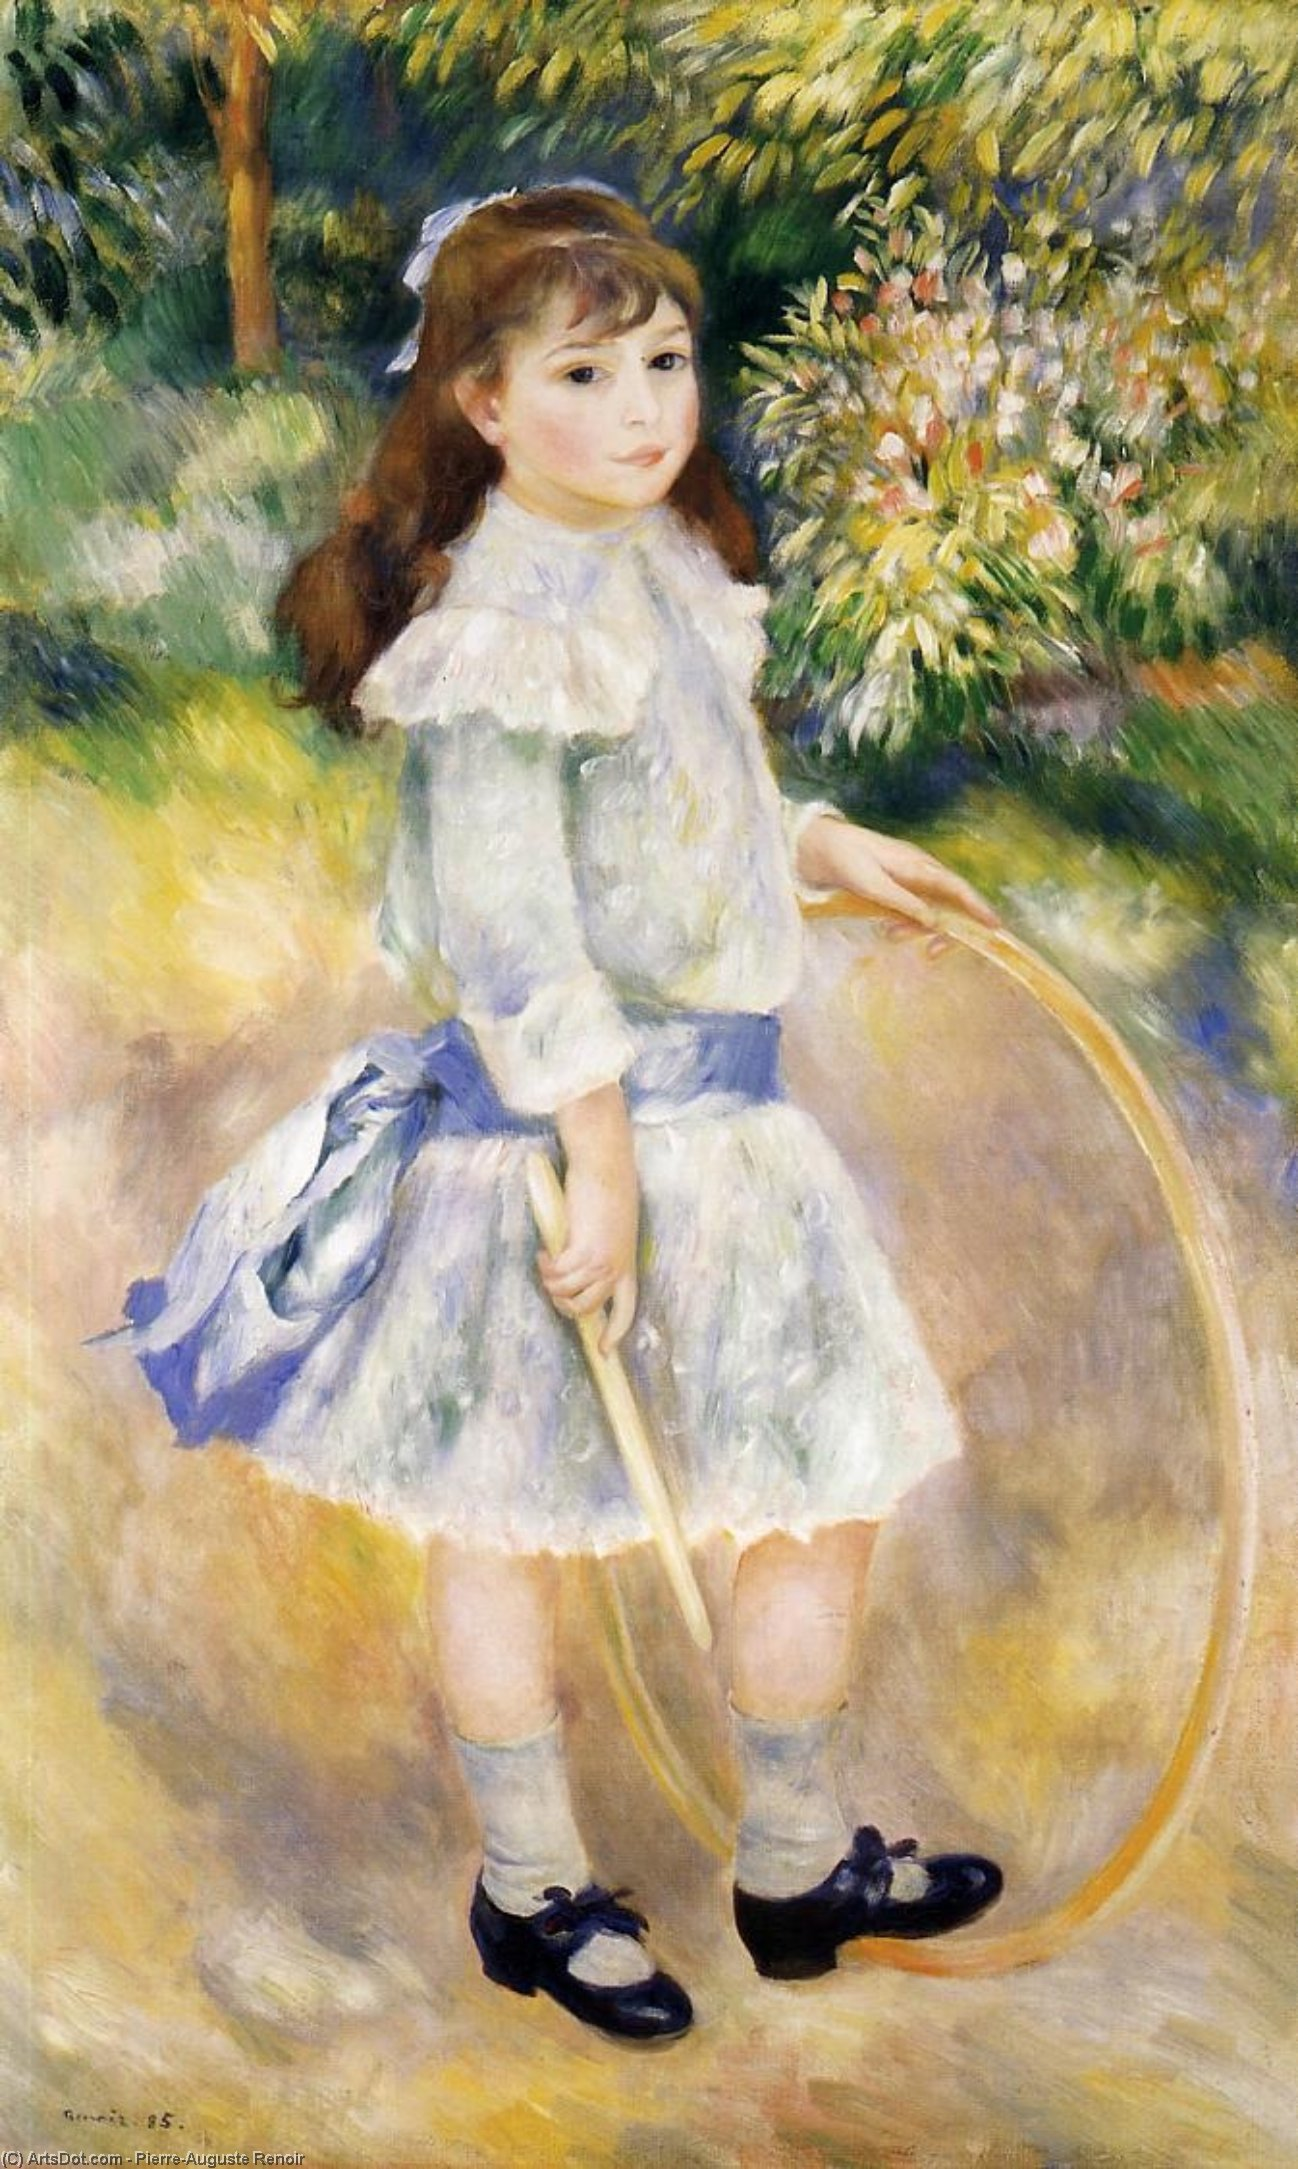 Wikioo.org - The Encyclopedia of Fine Arts - Painting, Artwork by Pierre-Auguste Renoir - Girl with a Hoop